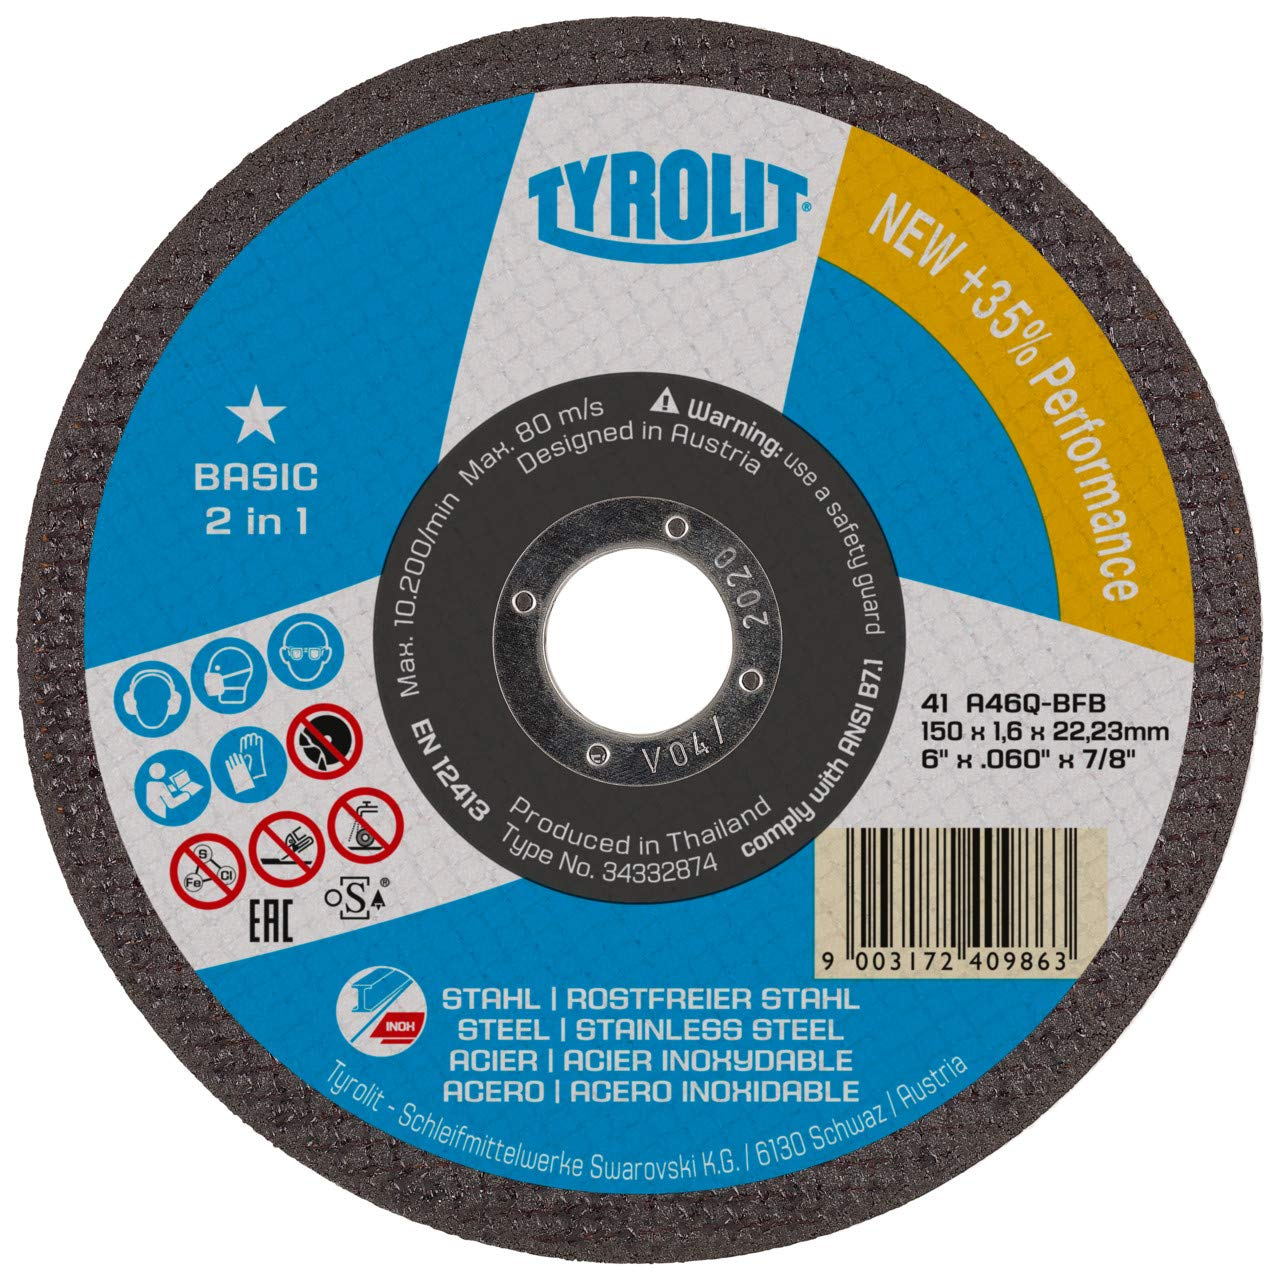 TYROLIT 299270 2 In 1 Cutting Disc for Steel 75 mm Pack of 100